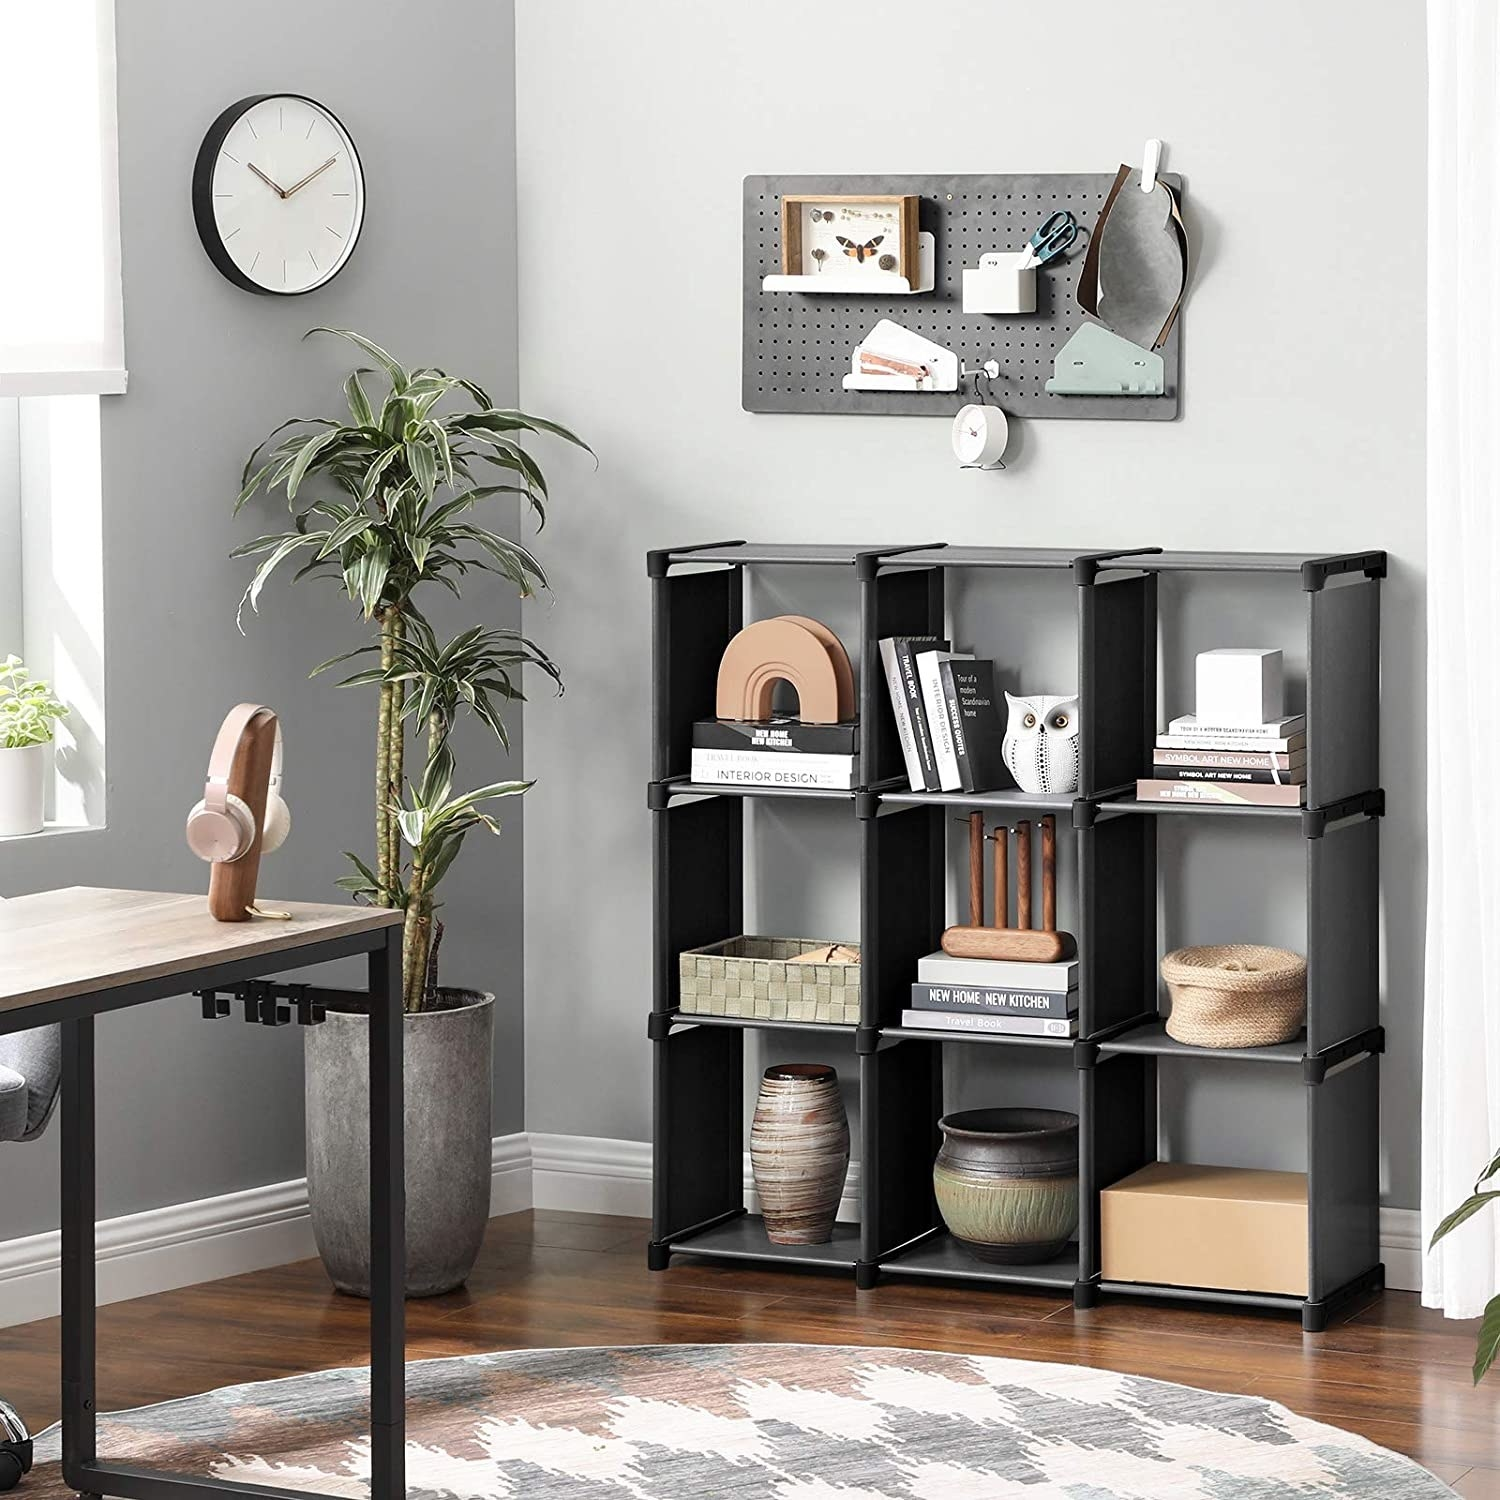 A bookshelf with nine square compartments that are filled with vases, bins, and stacks of books